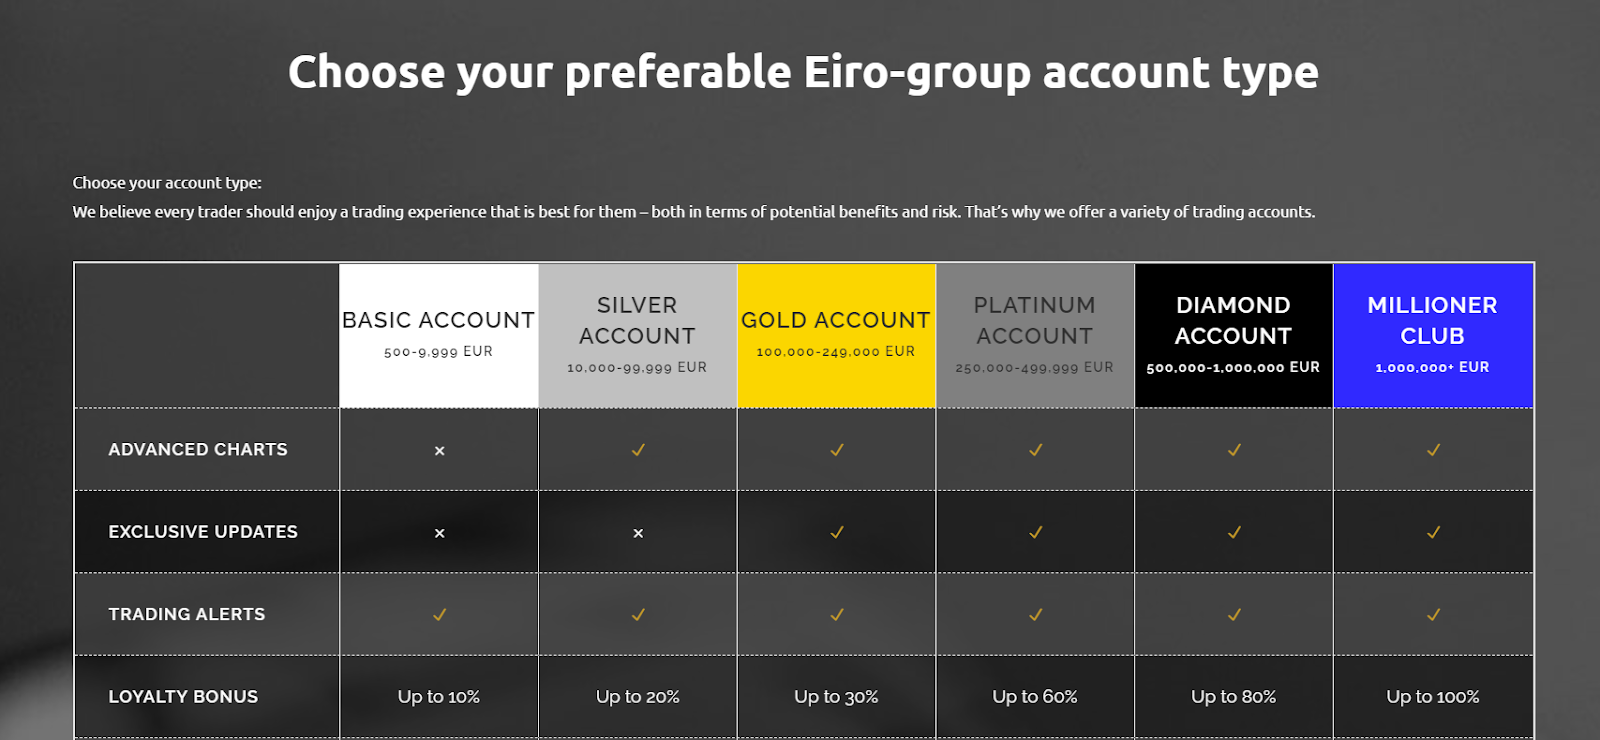 Eiro-group accounts